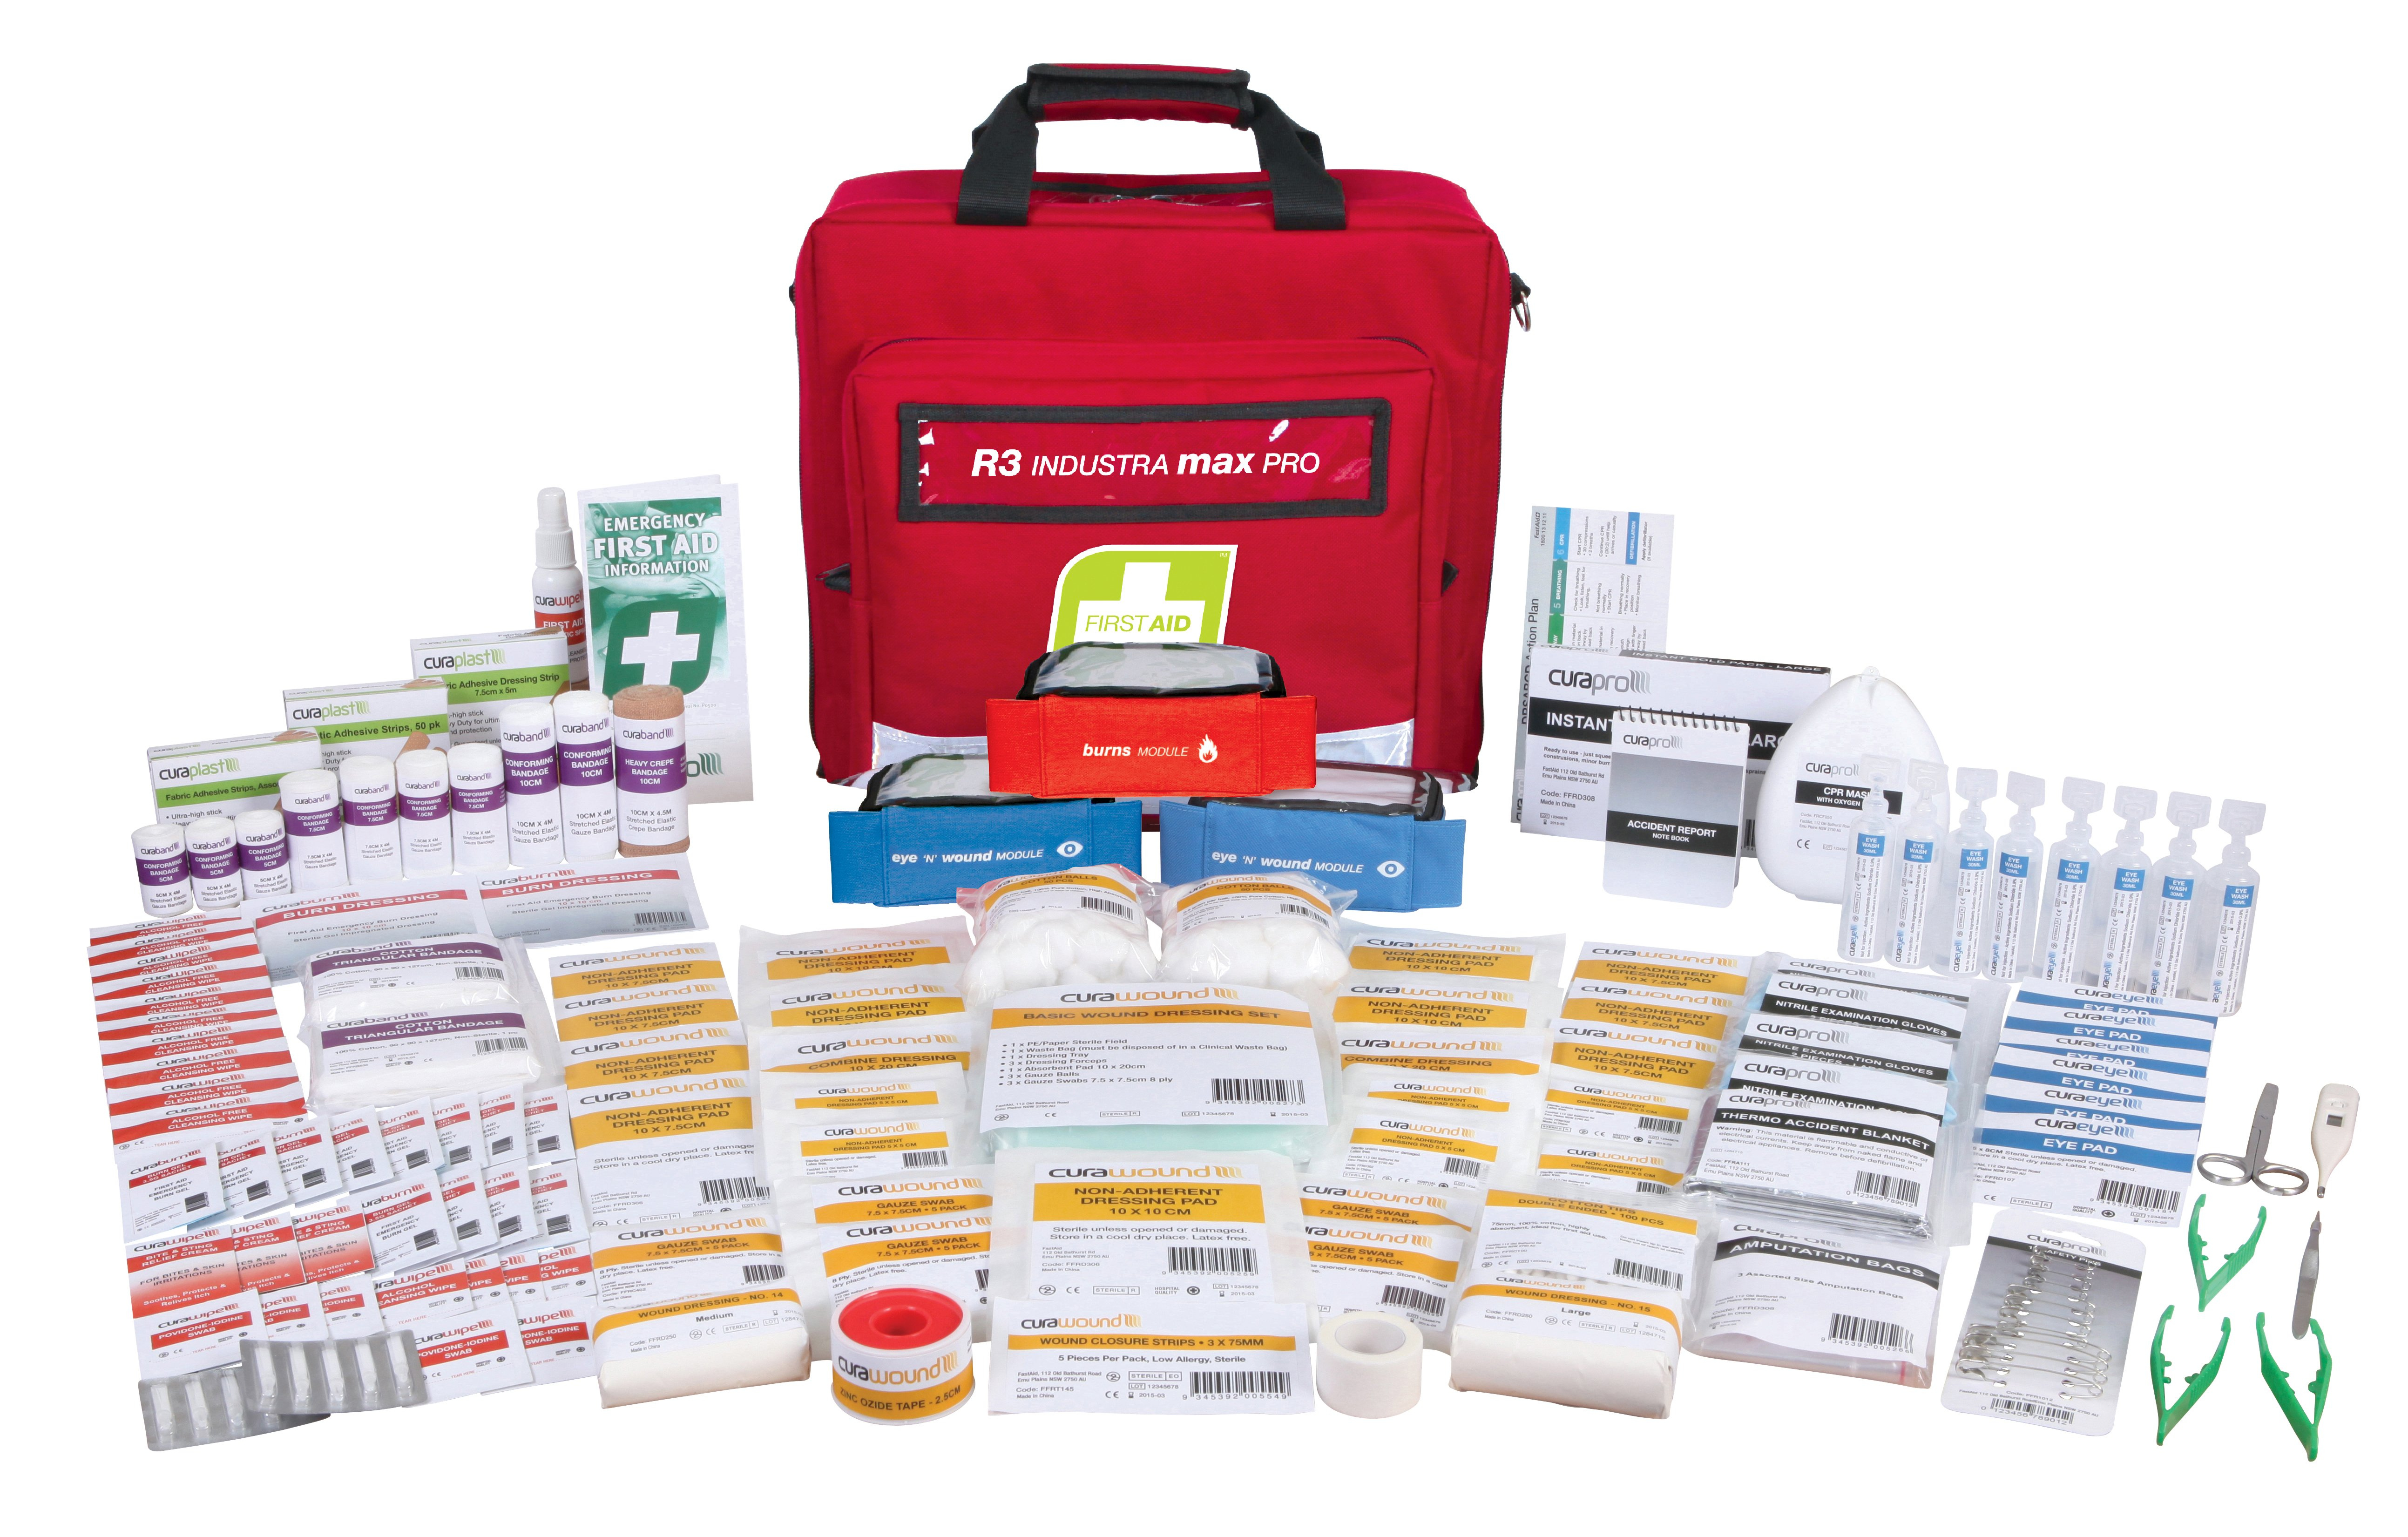 R3 Industra Max Pro First Aid Kit, Soft Pack